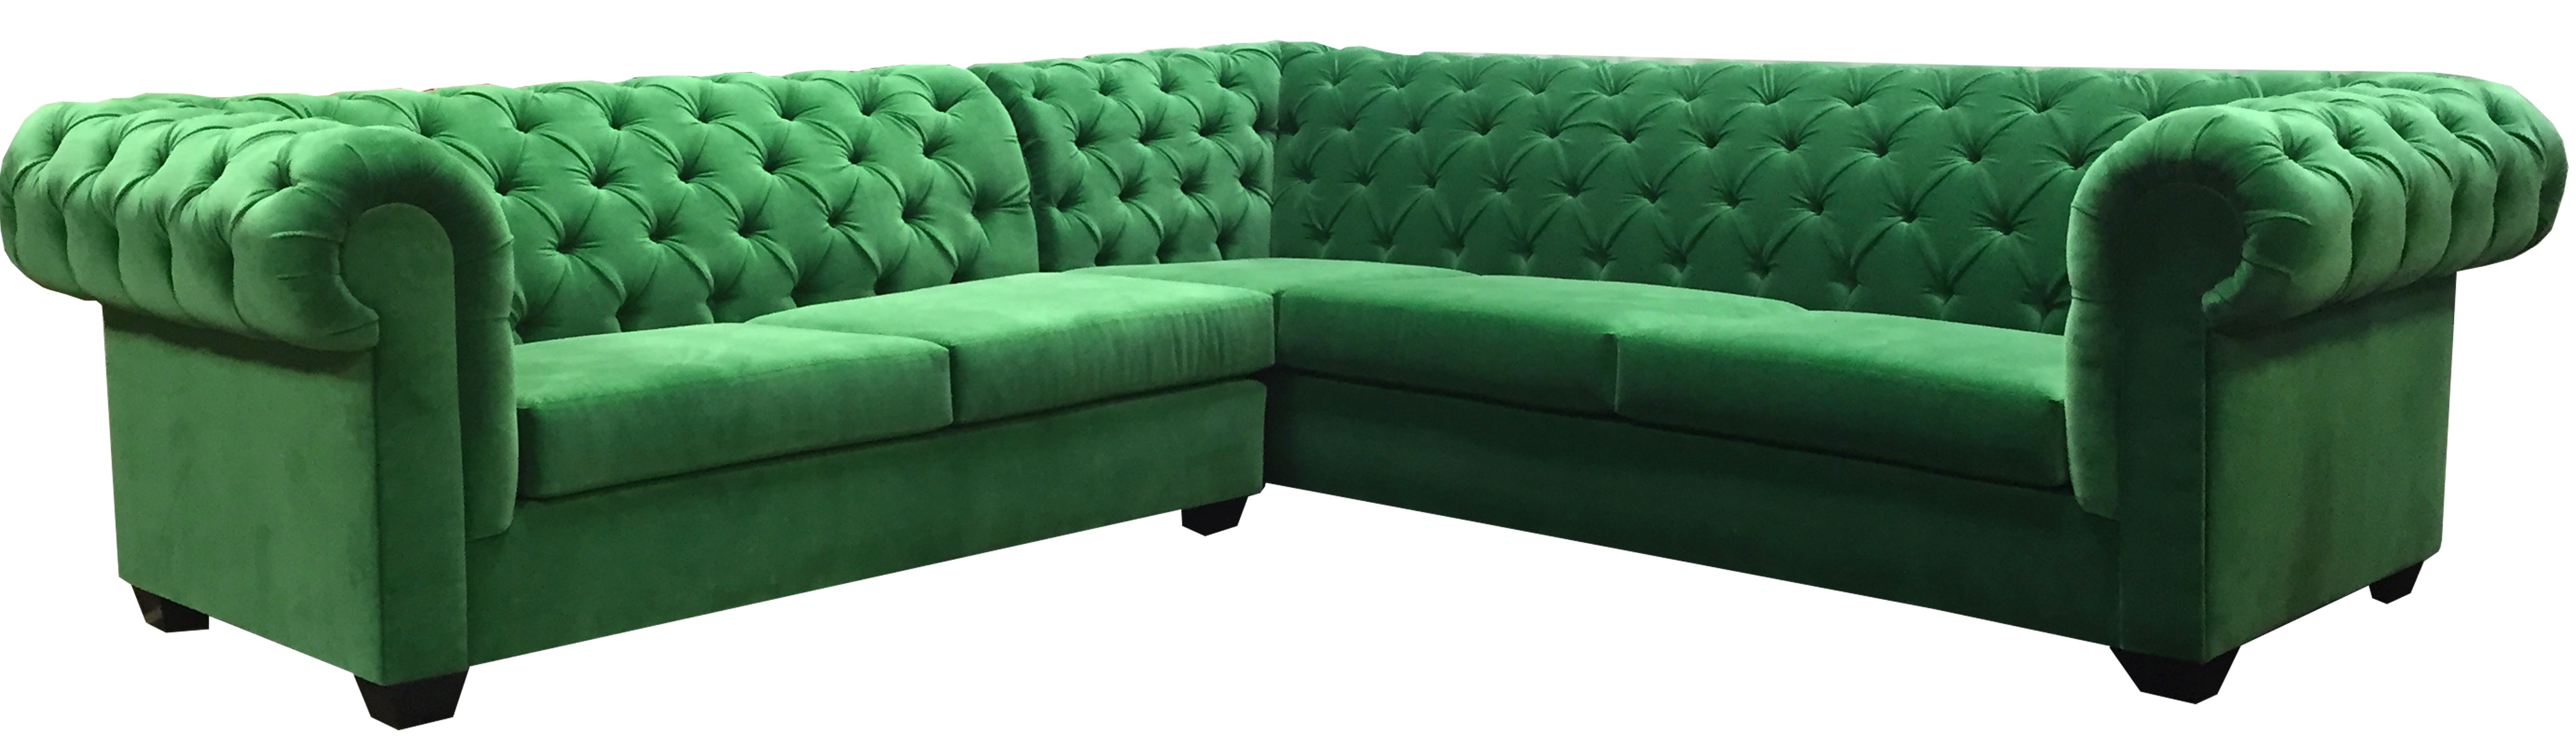 Green Sectional Sofa Mint Hunter Olive Stock Photos Hd | Paramountsmart Regarding Green Sectional Sofas (View 10 of 10)